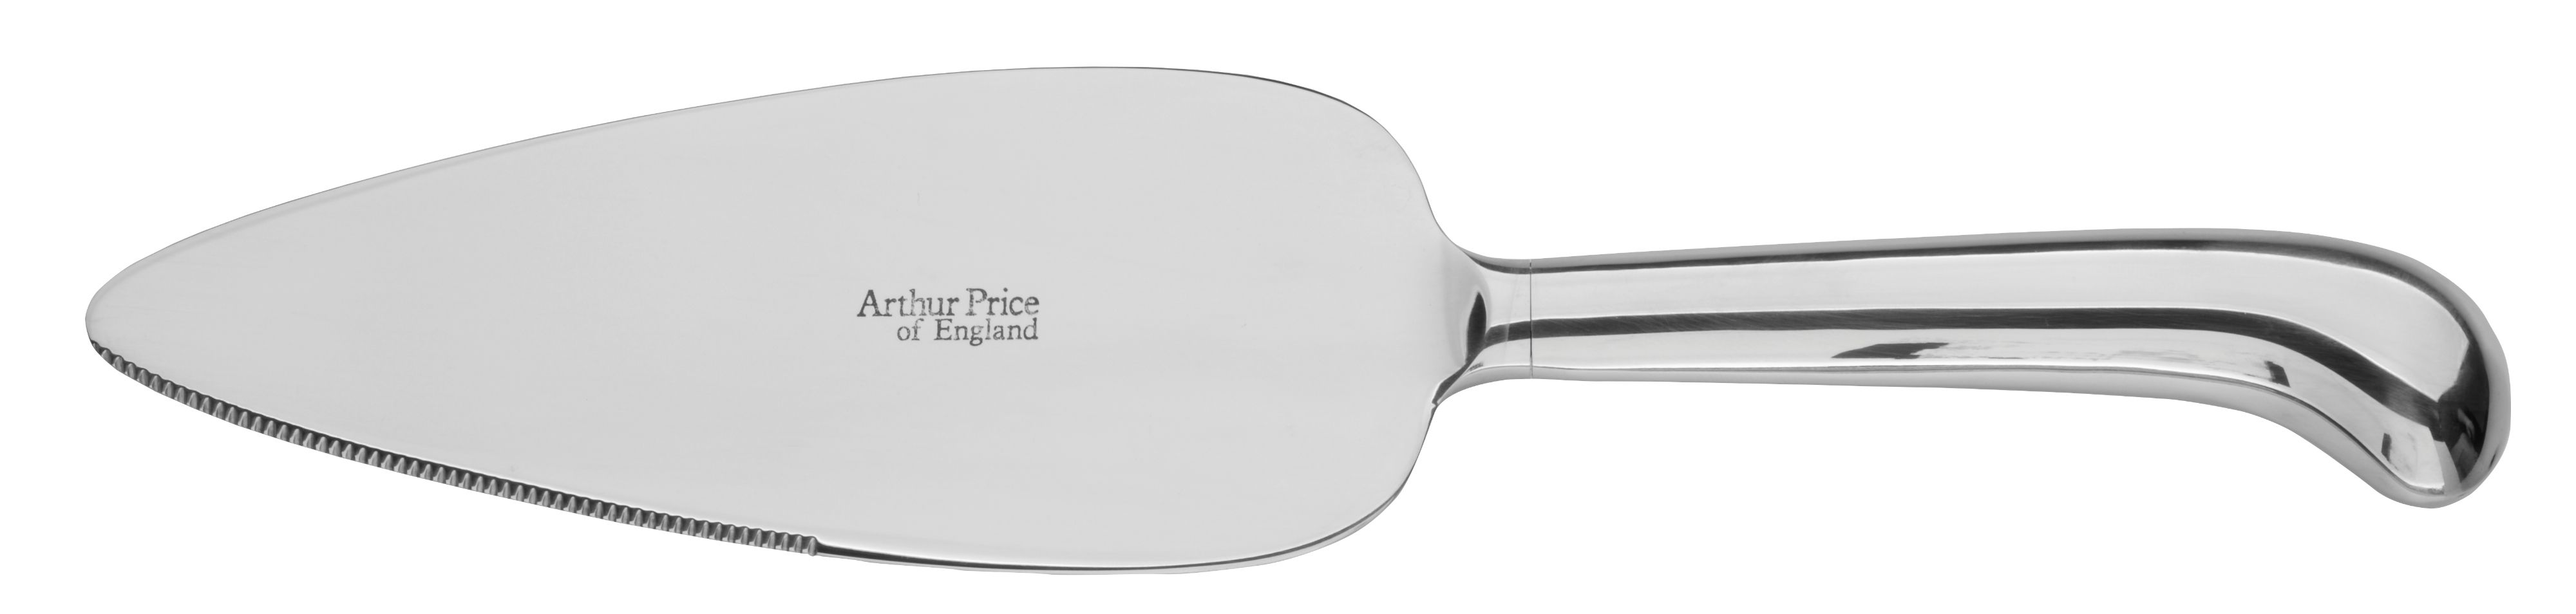 Arthur price vintage stainless steel cake server review for Quality classic house of fraser